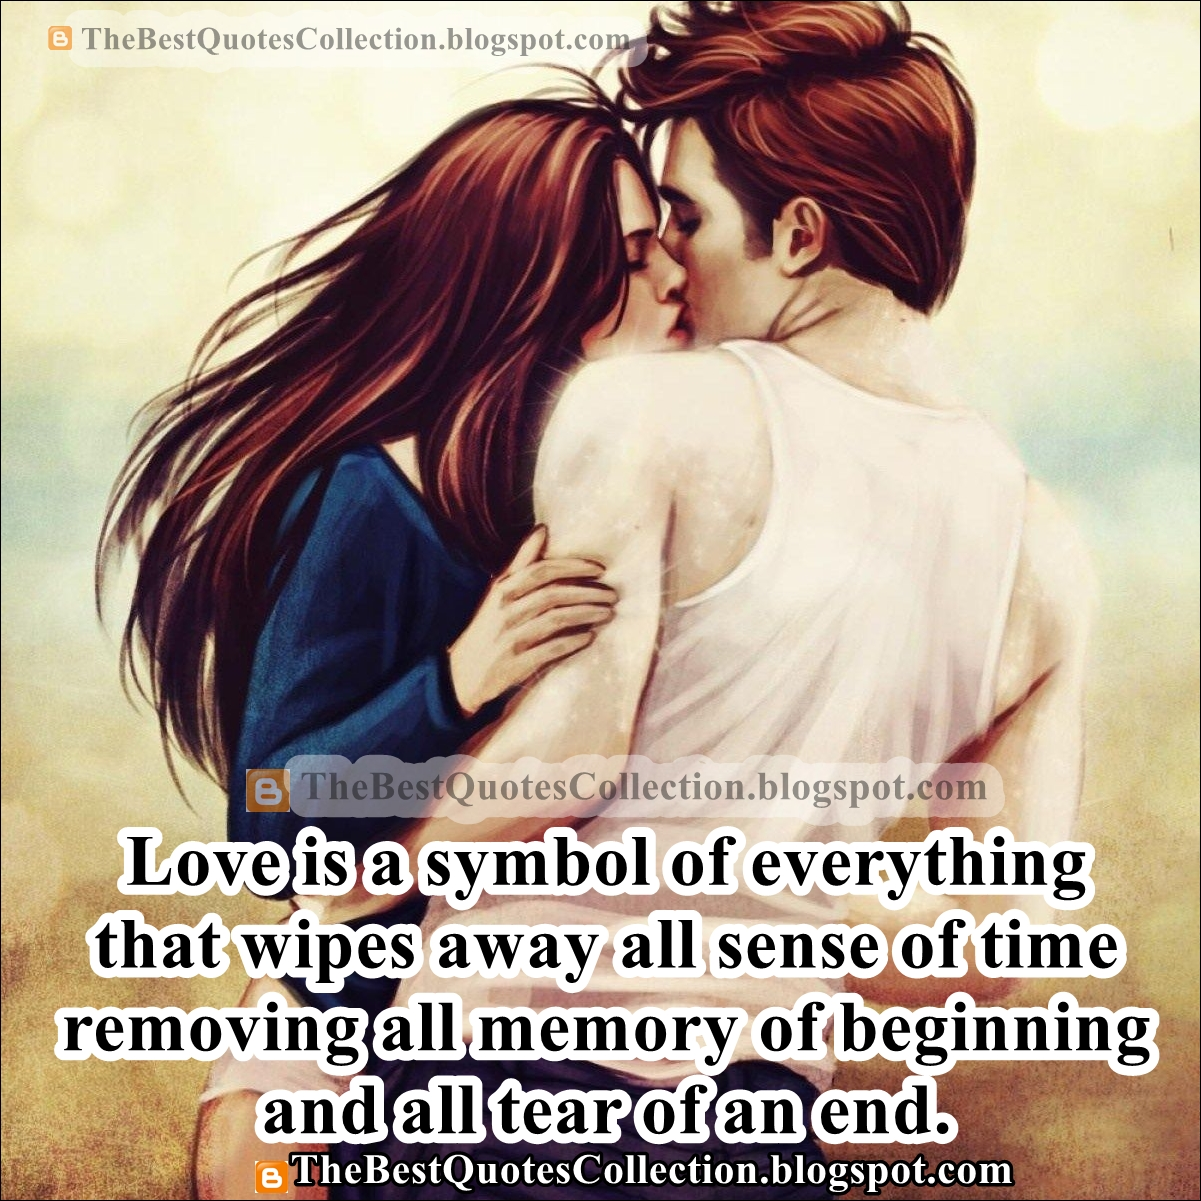 Romantic Love Text Message For Girlfriend Love Quotes Wallpapers Whatsapp Dp